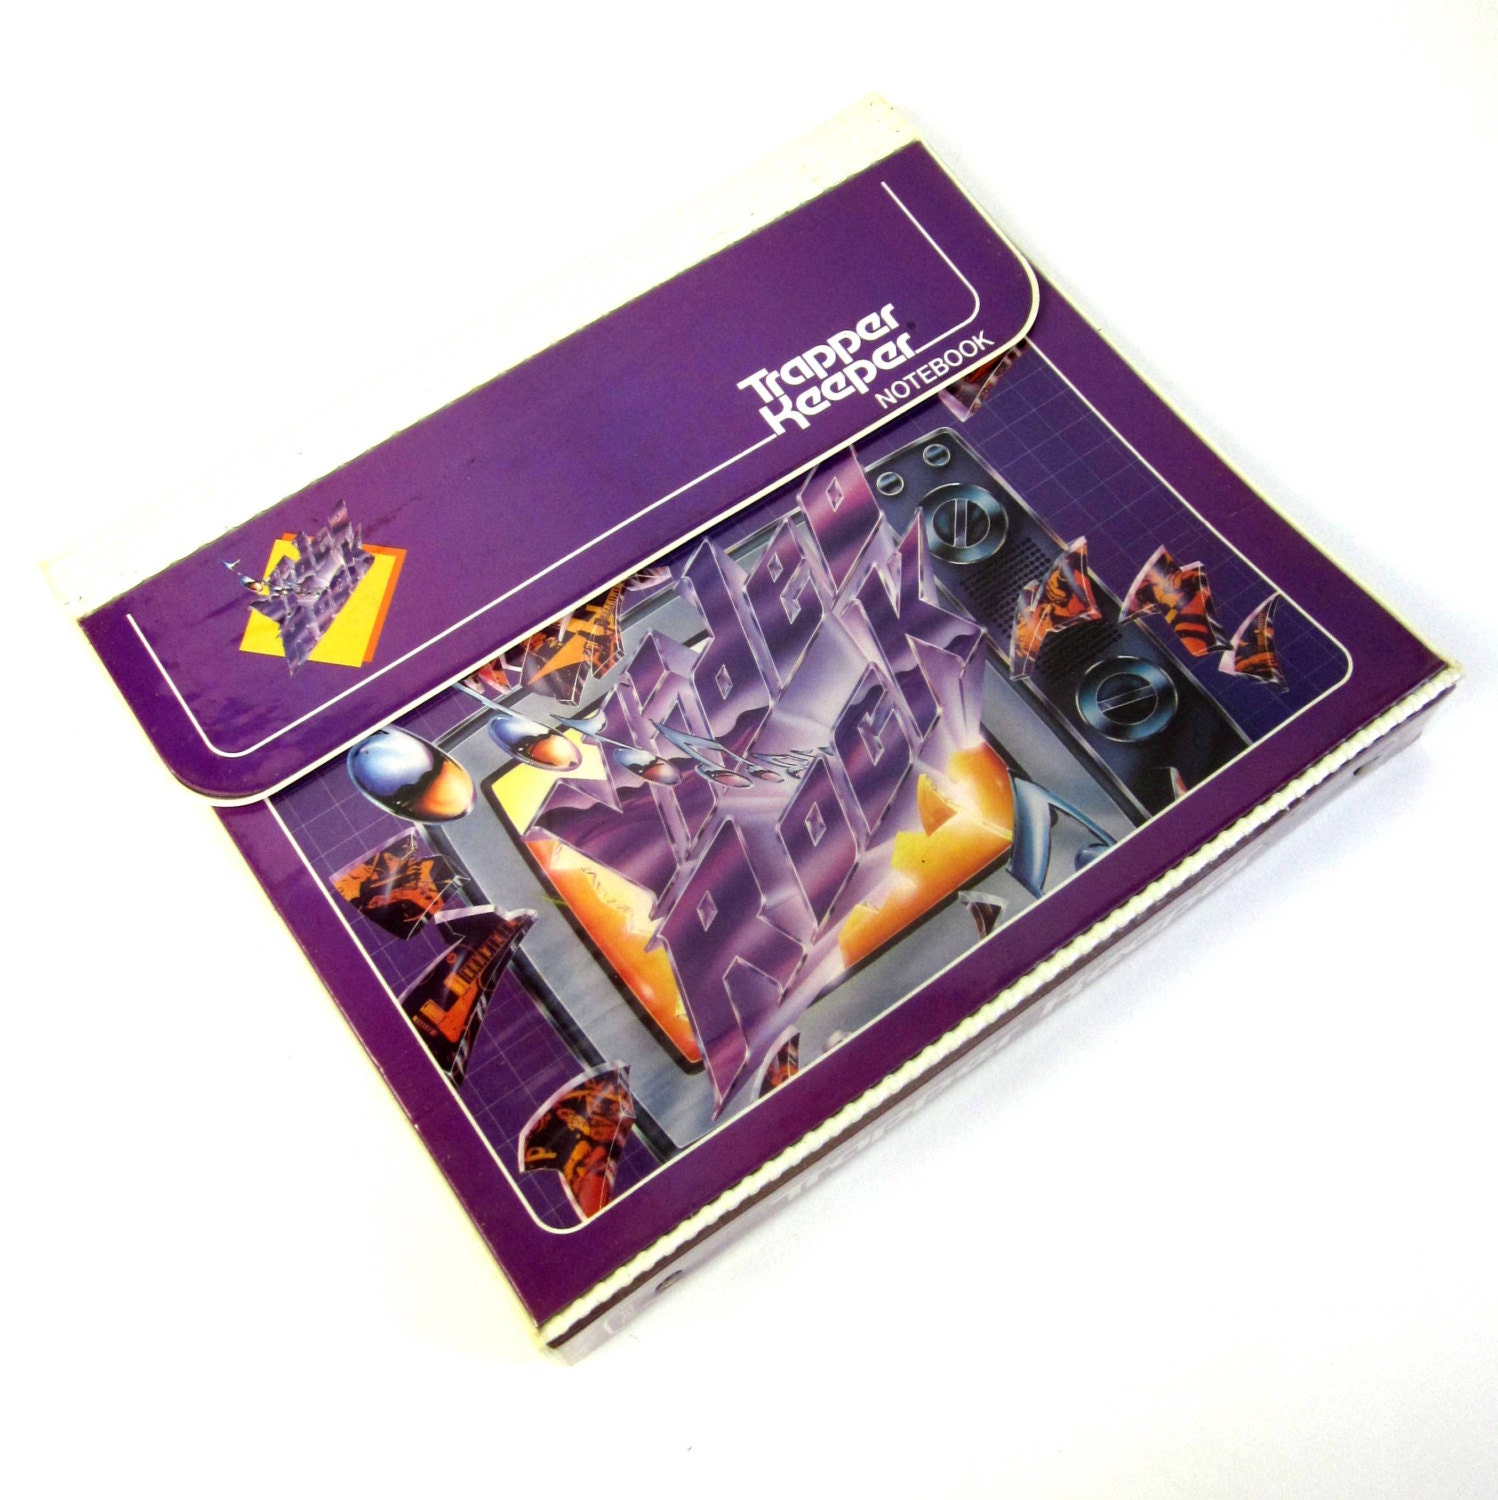 Video Rock Trapper Keeper Notebook 80s